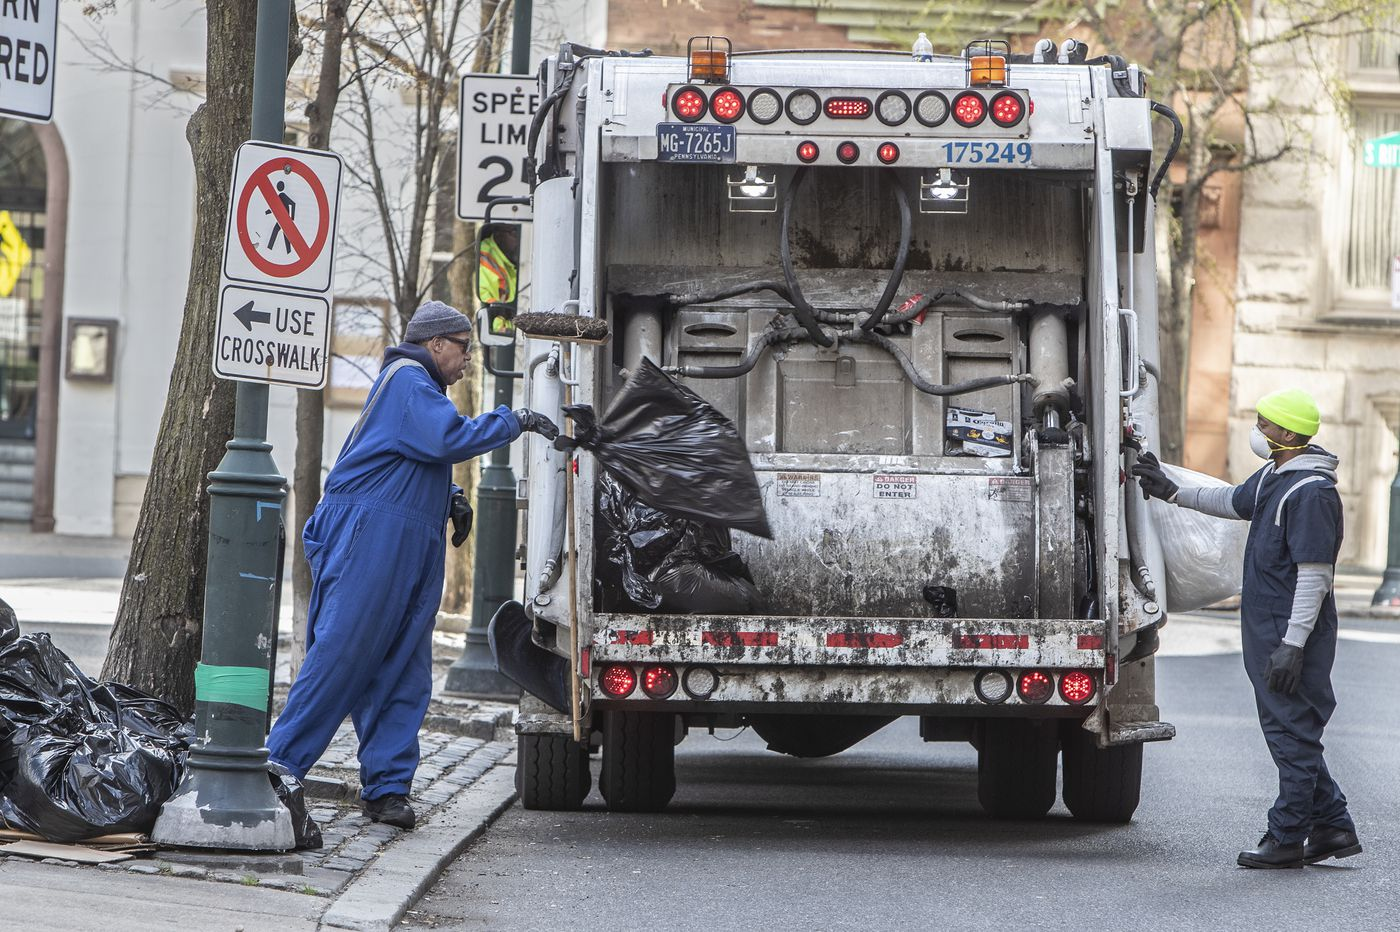 Philly will hire 120 temporary workers for trash pickup as big delays drag on